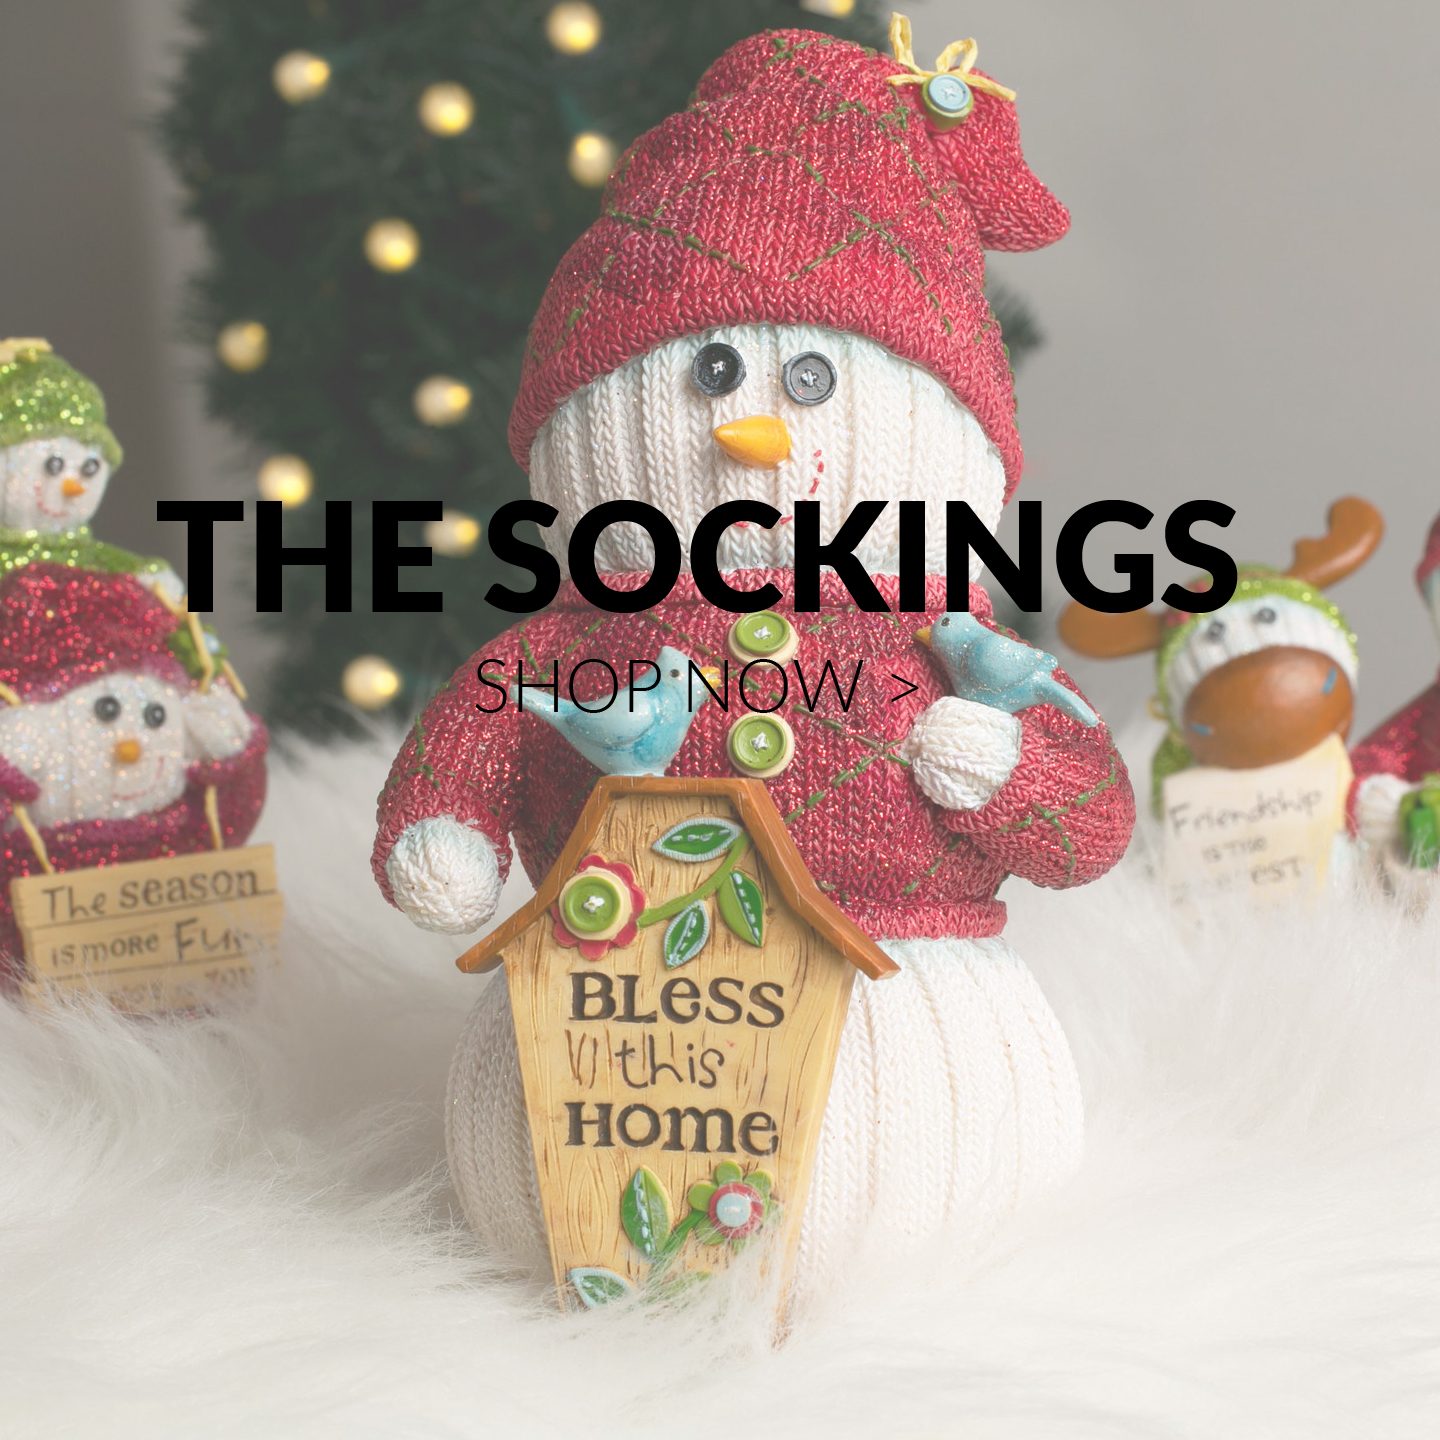 The Sockings